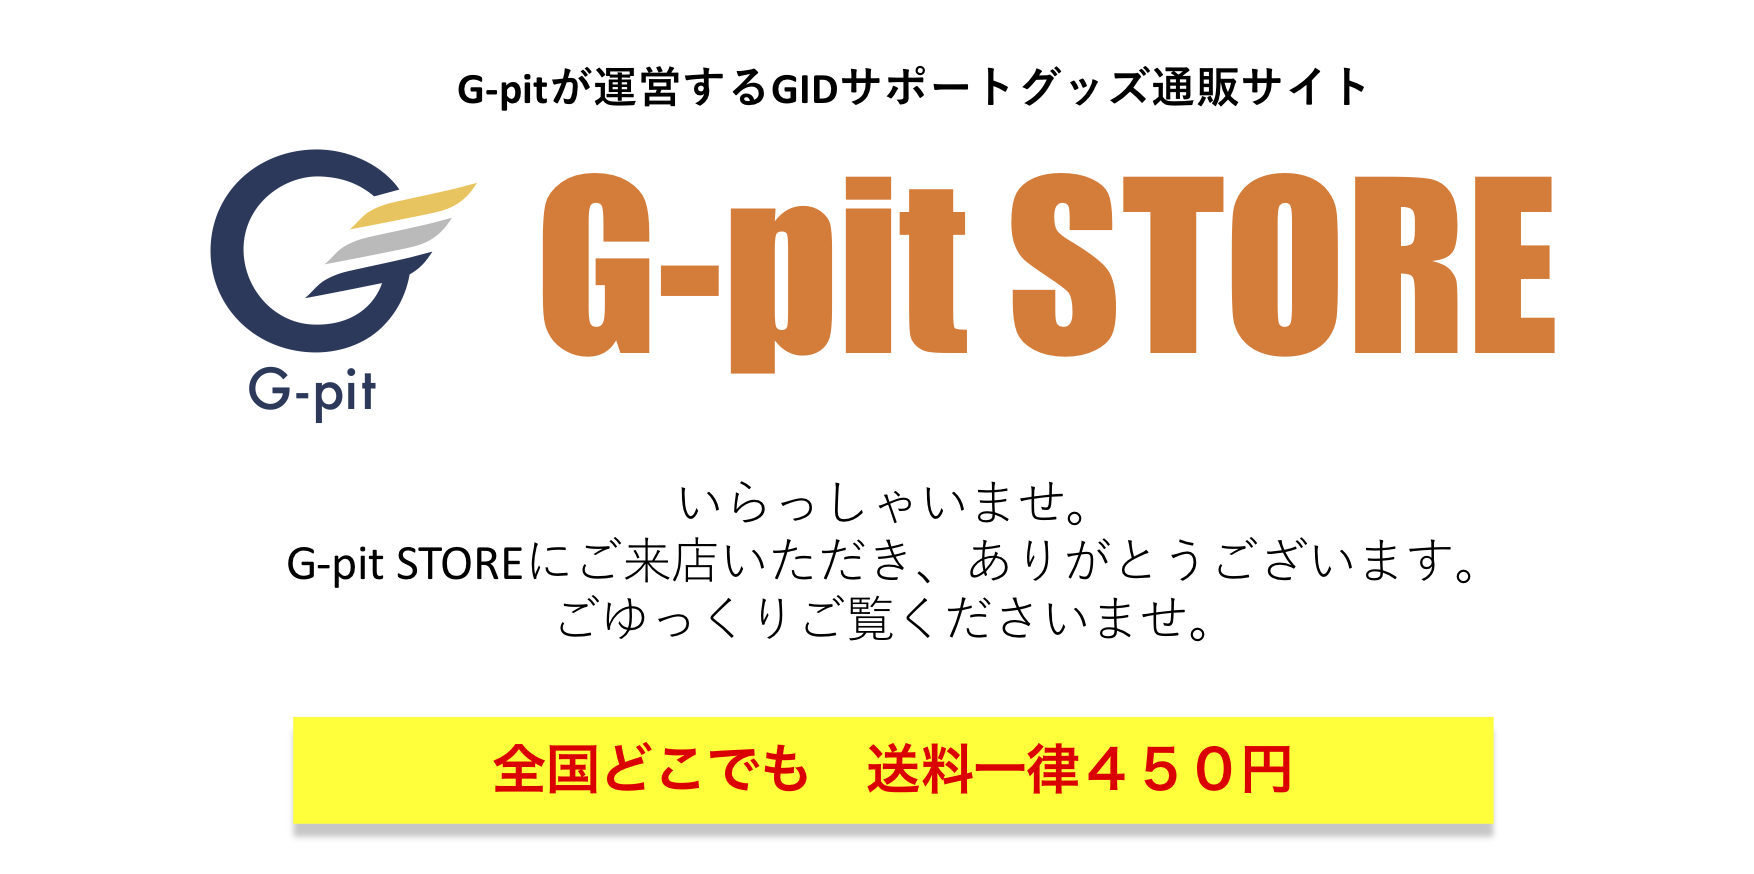 G-pit Store